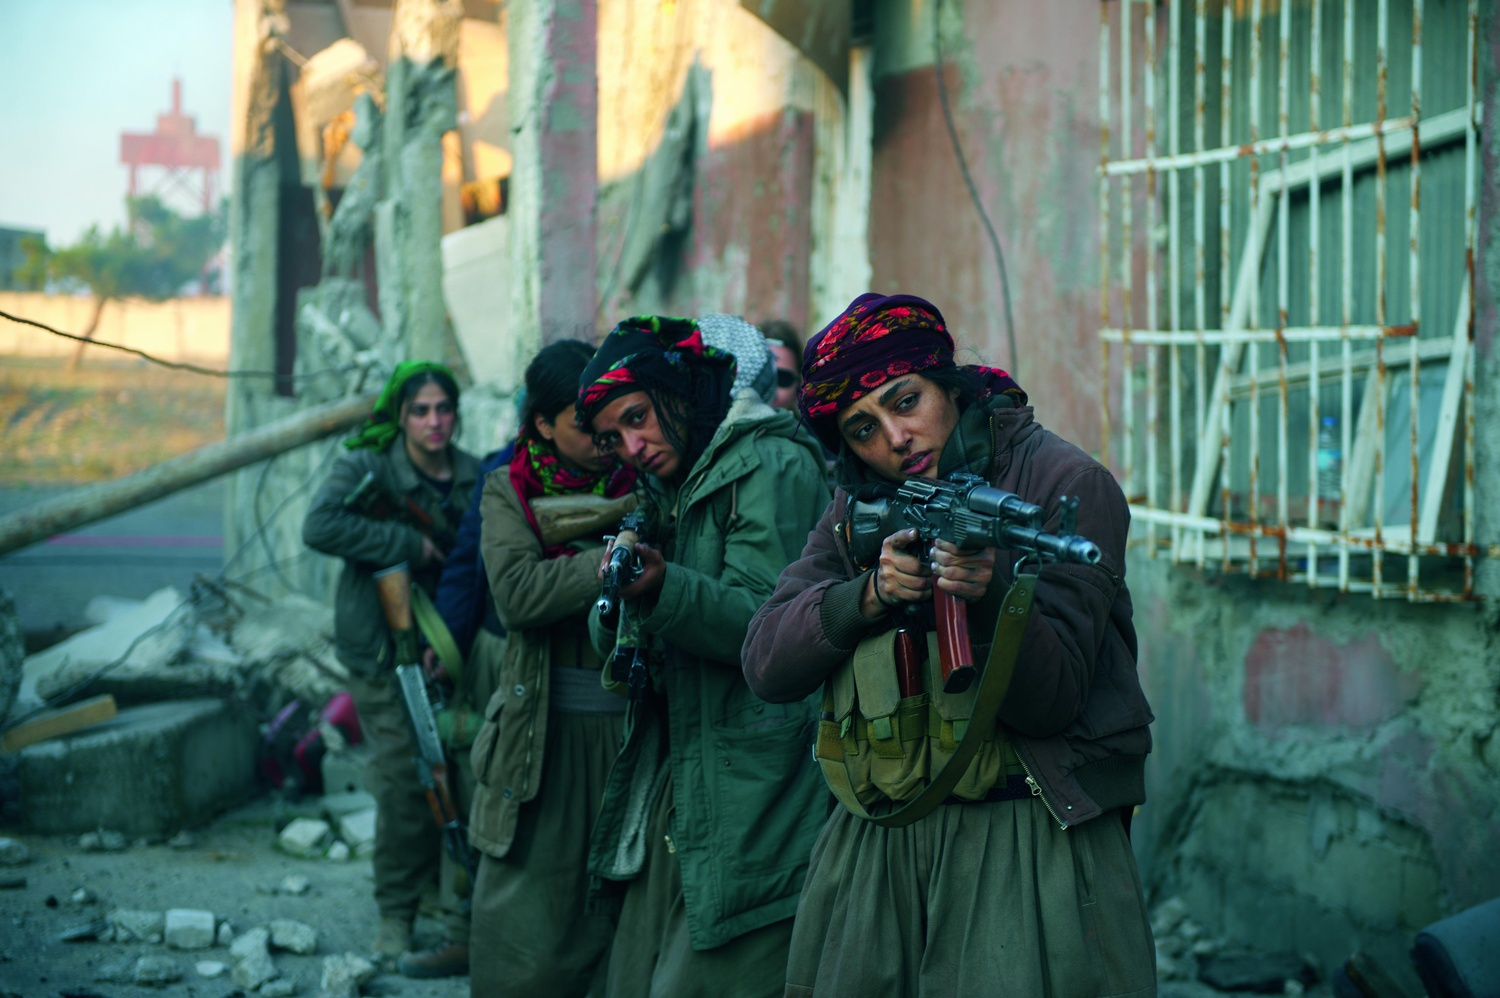 """Directed by Eva Husson, """"Filles de Soleil"""" (""""Girls of the Sun"""") premiered at the Cannes Film Festival, 2018."""